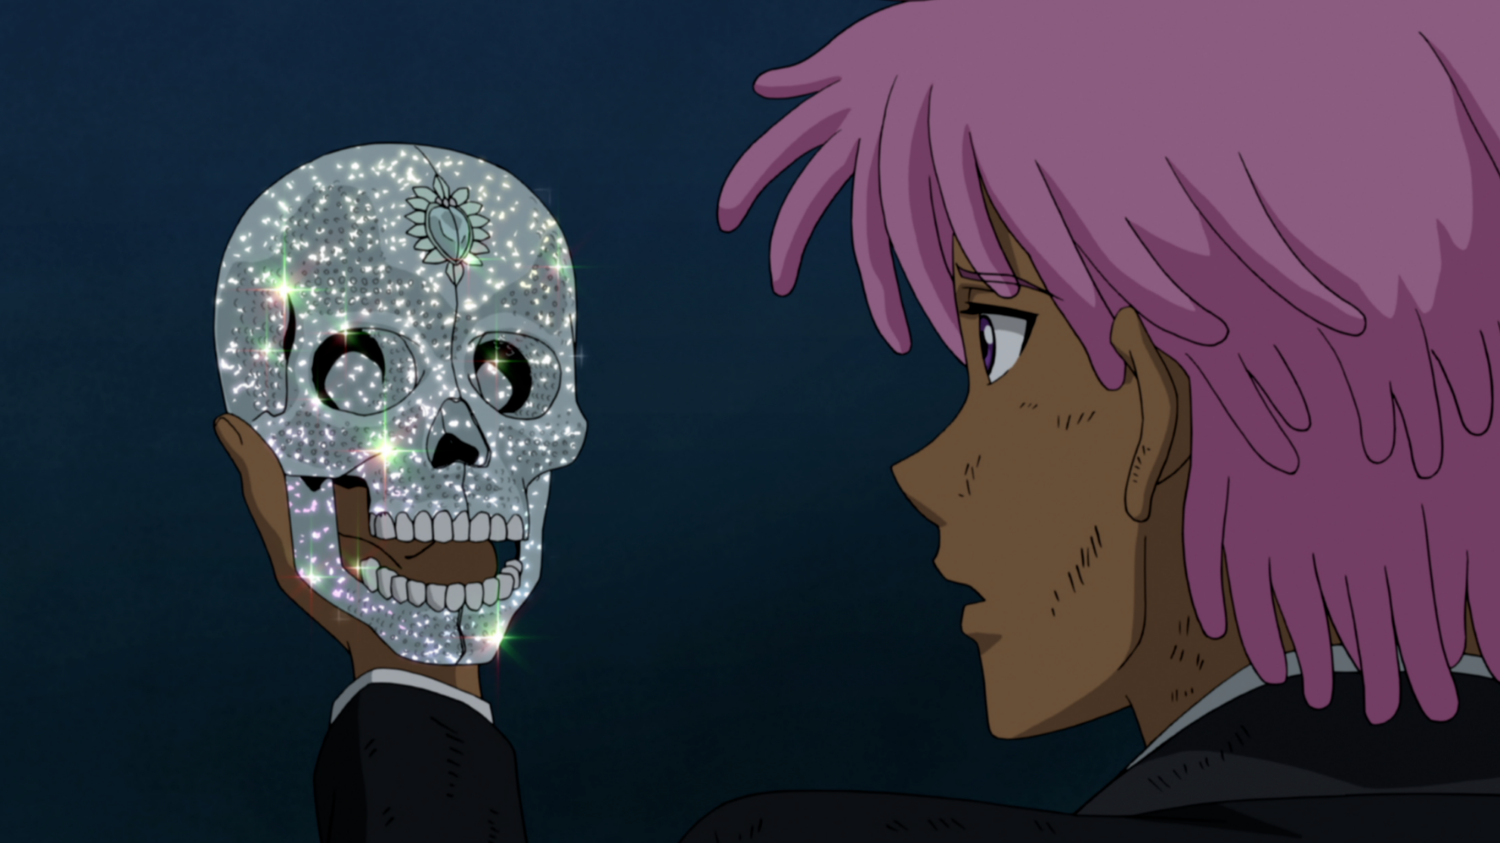 Neo Yokio Pink Christmas.Neo Yokio Pink Christmas Explained A Whimsical Scathing